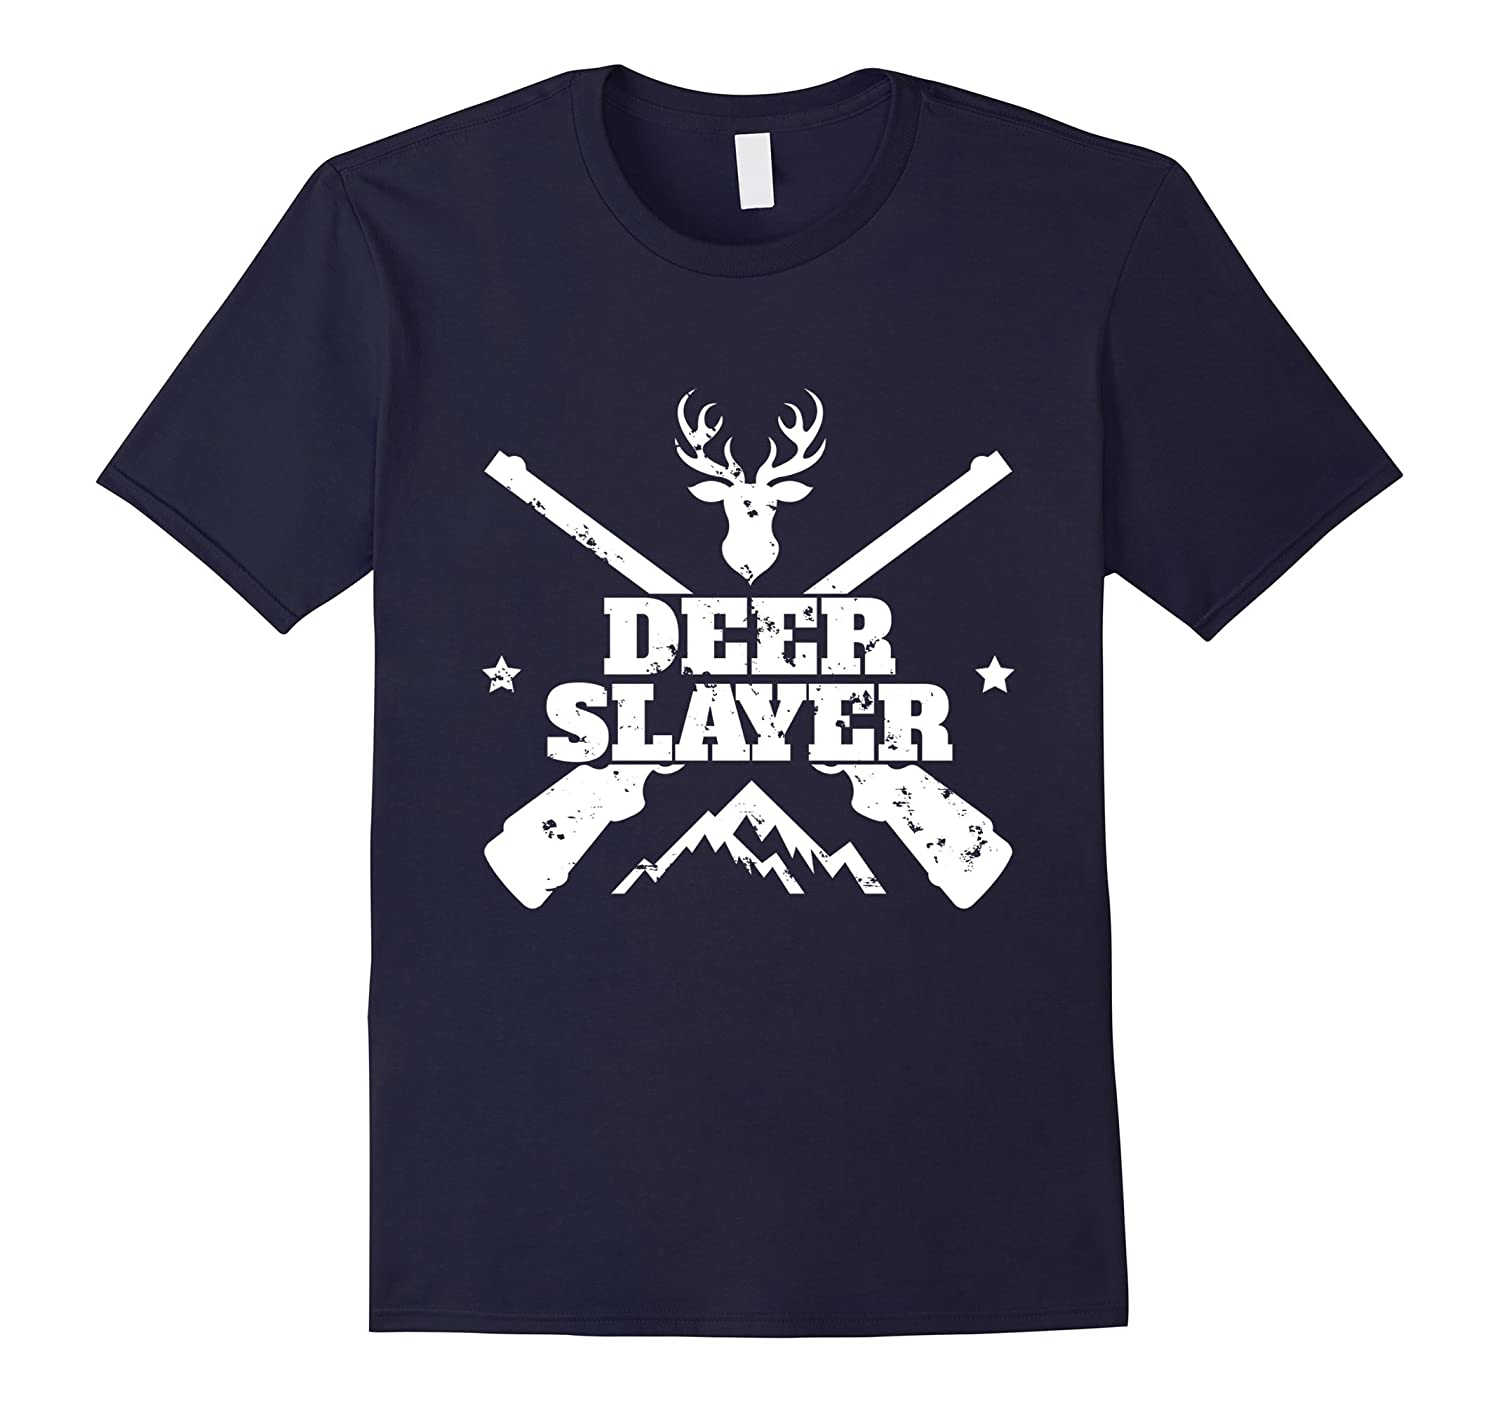 Hunt Deer Slayer Hunting Hunter Deer Killer Shirt Buck-FL